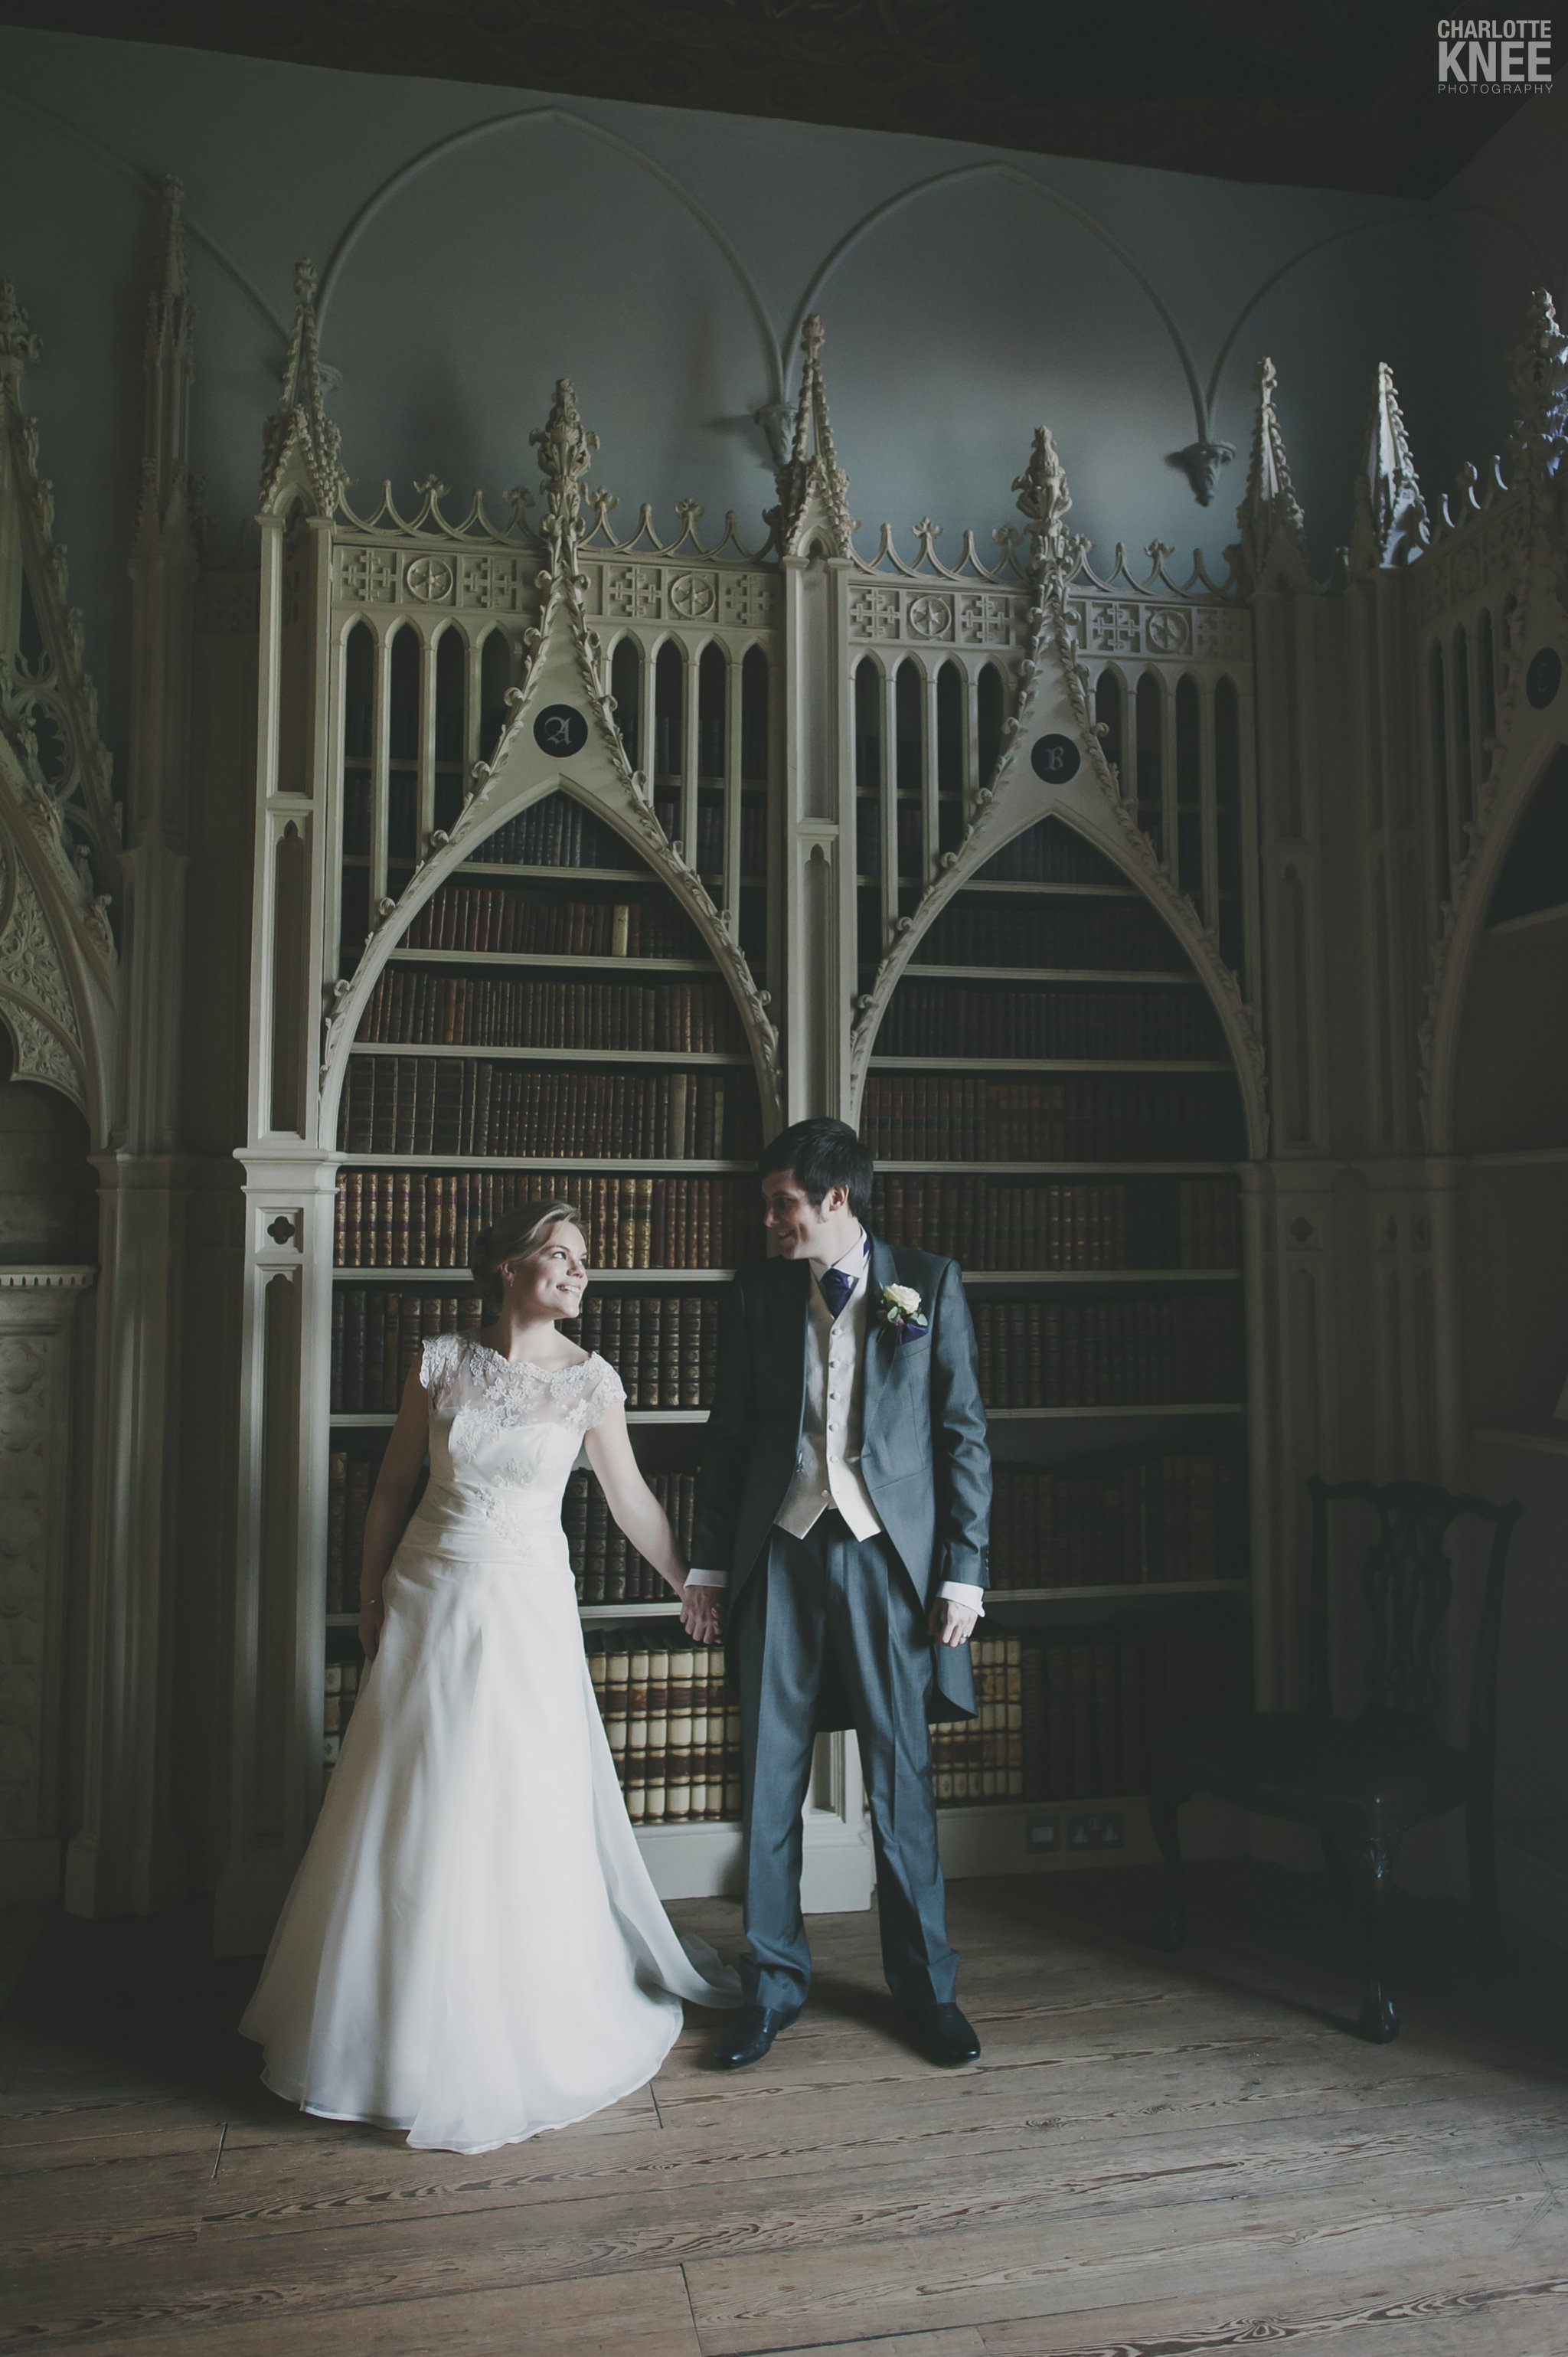 LONDON-WEDDING-PHOTOGRAPHY-STRAWBERRY-HILL-HOUSE-Charlotte-Knee-Photography_0060.jpg